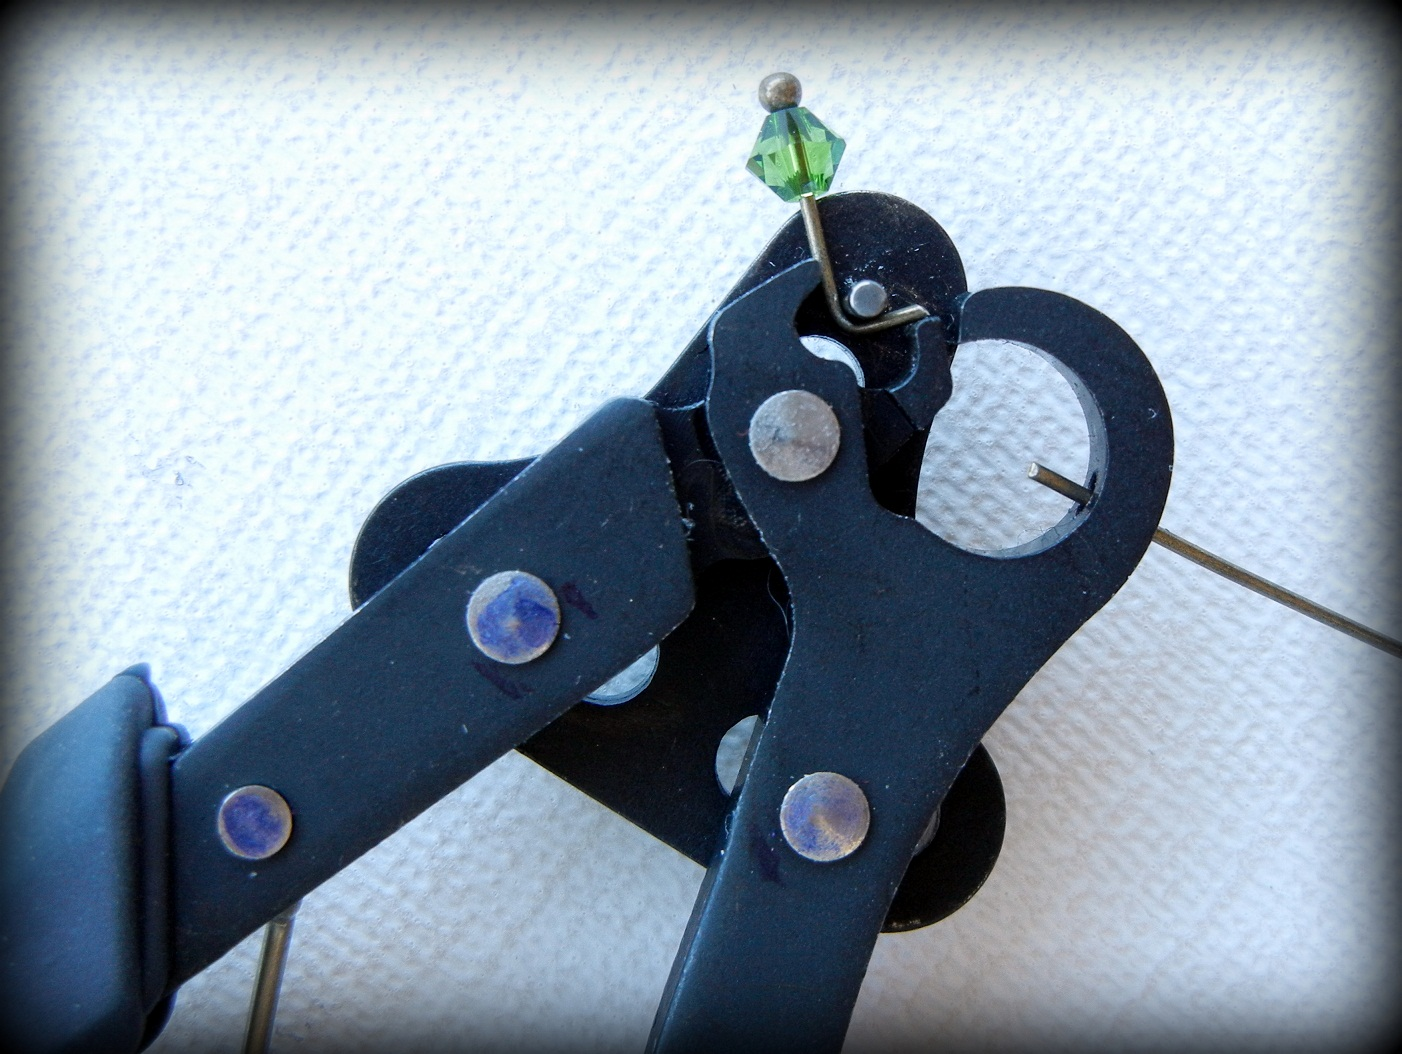 Squeezing the handles of the 1-Step Looper jewelry pliers will cut and shape the wire end.